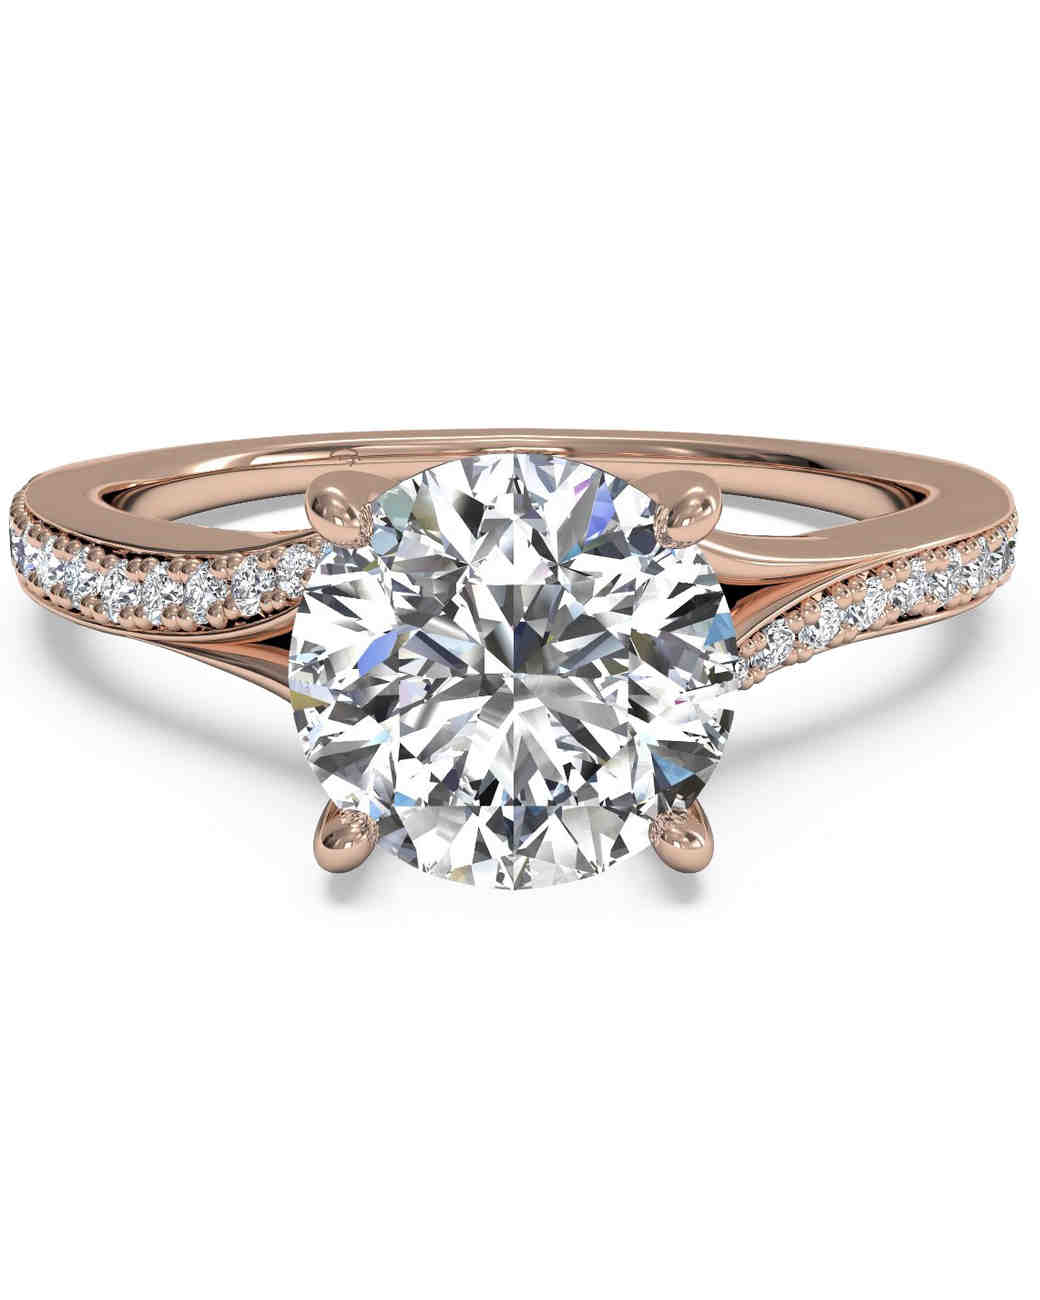 Ritani Modern Bypass Micropavé Rose Gold Engagement Ring